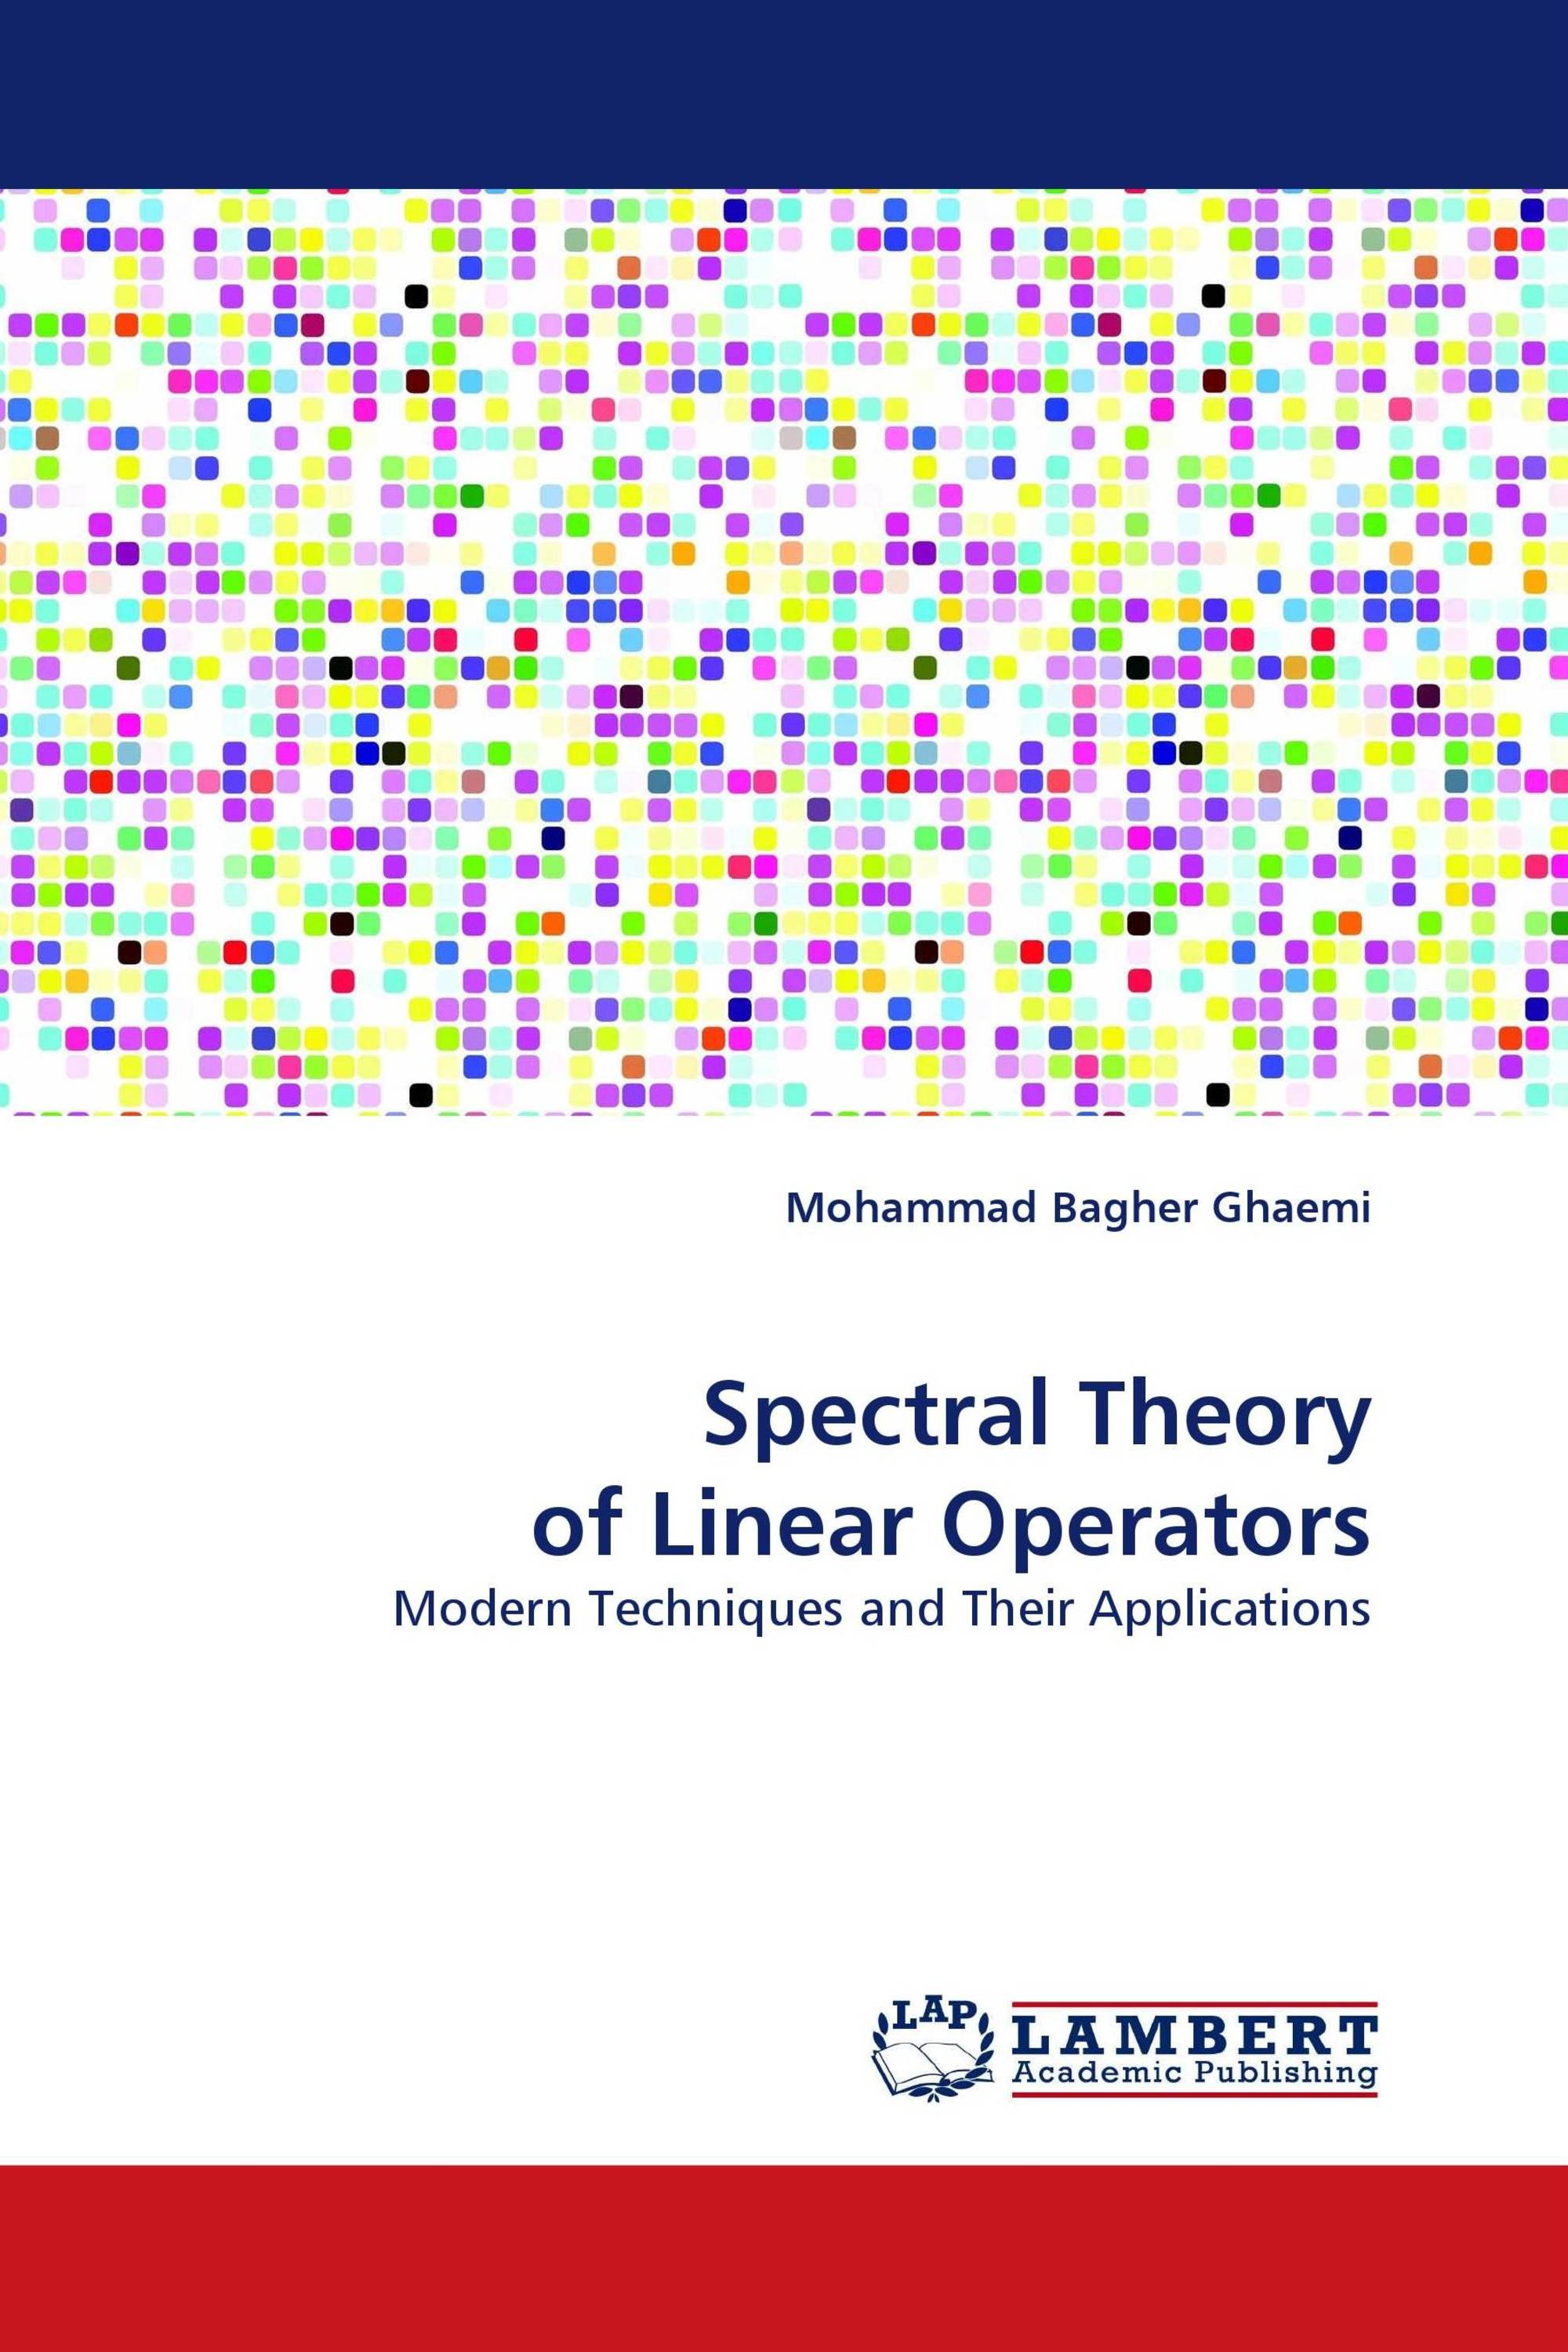 Spectral Theory of Linear Operators